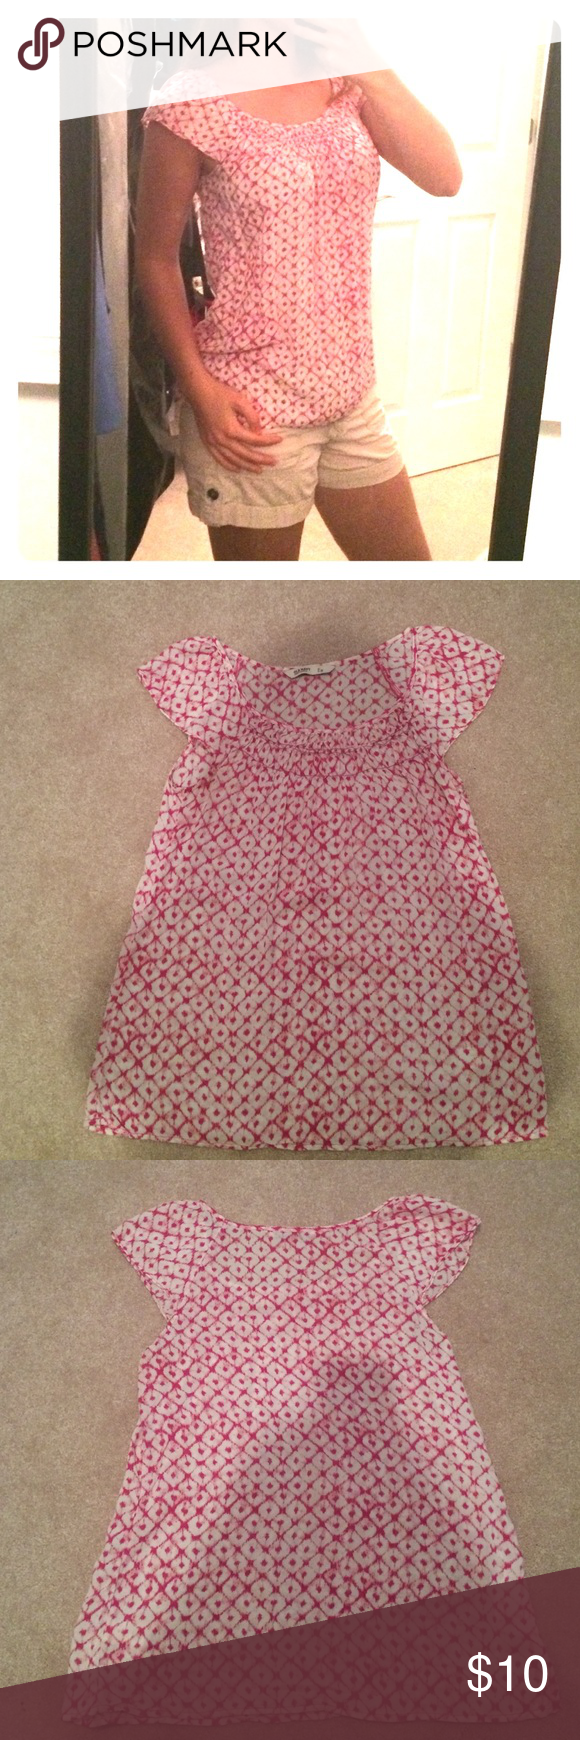 Flowy pink top Old Navy pink, geometric, flowy top. Really lightweight feel makes it perfect for summer. Cute little cap sleeves and gathering around the neckline. Perfect condition! Old Navy Tops Blouses